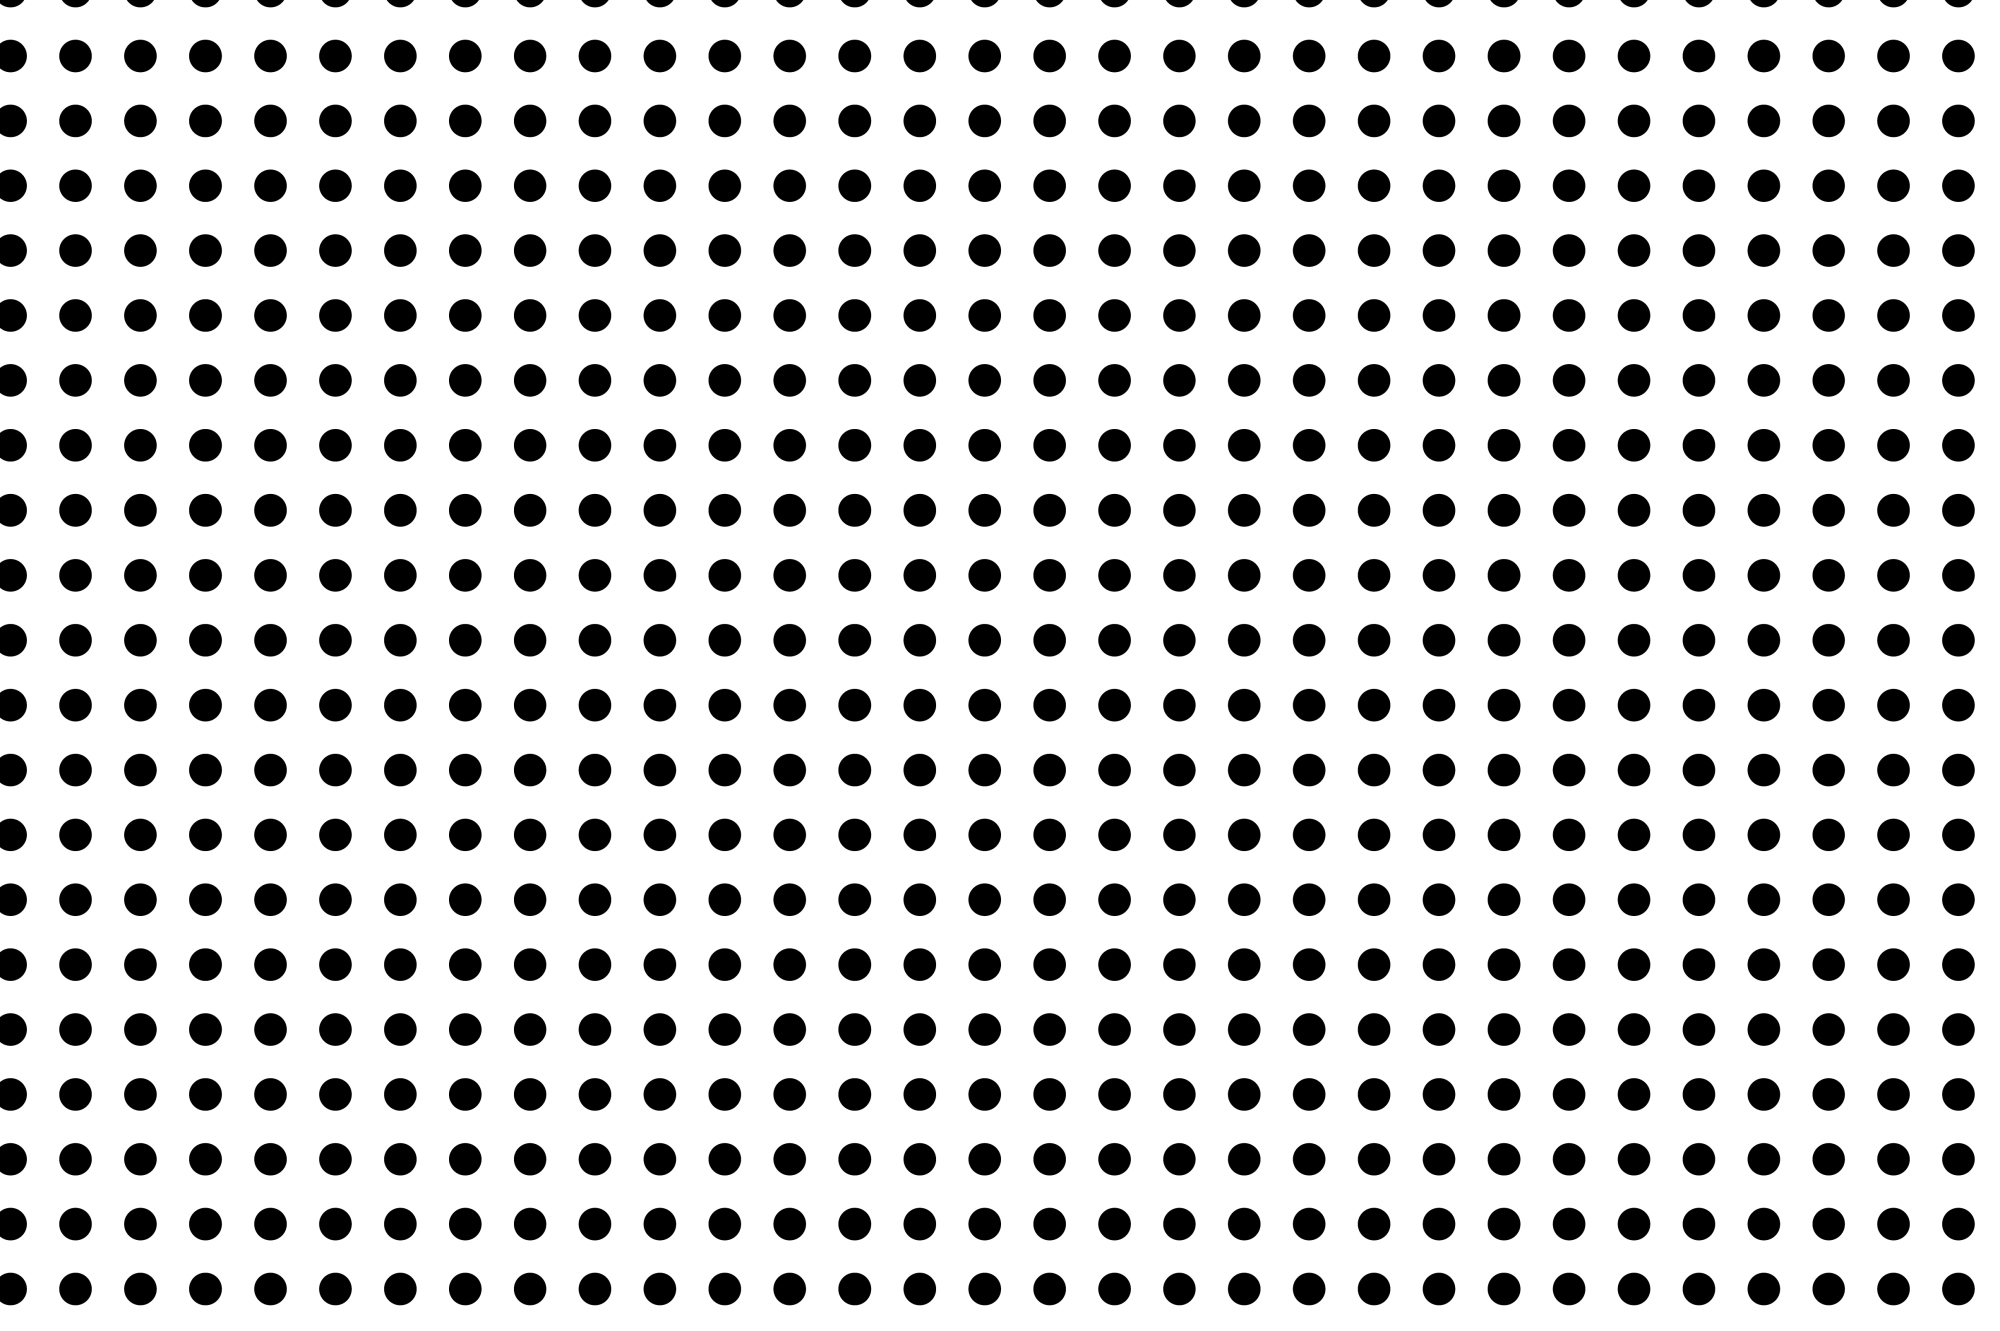 Set of dotted seamless patterns. example image 24